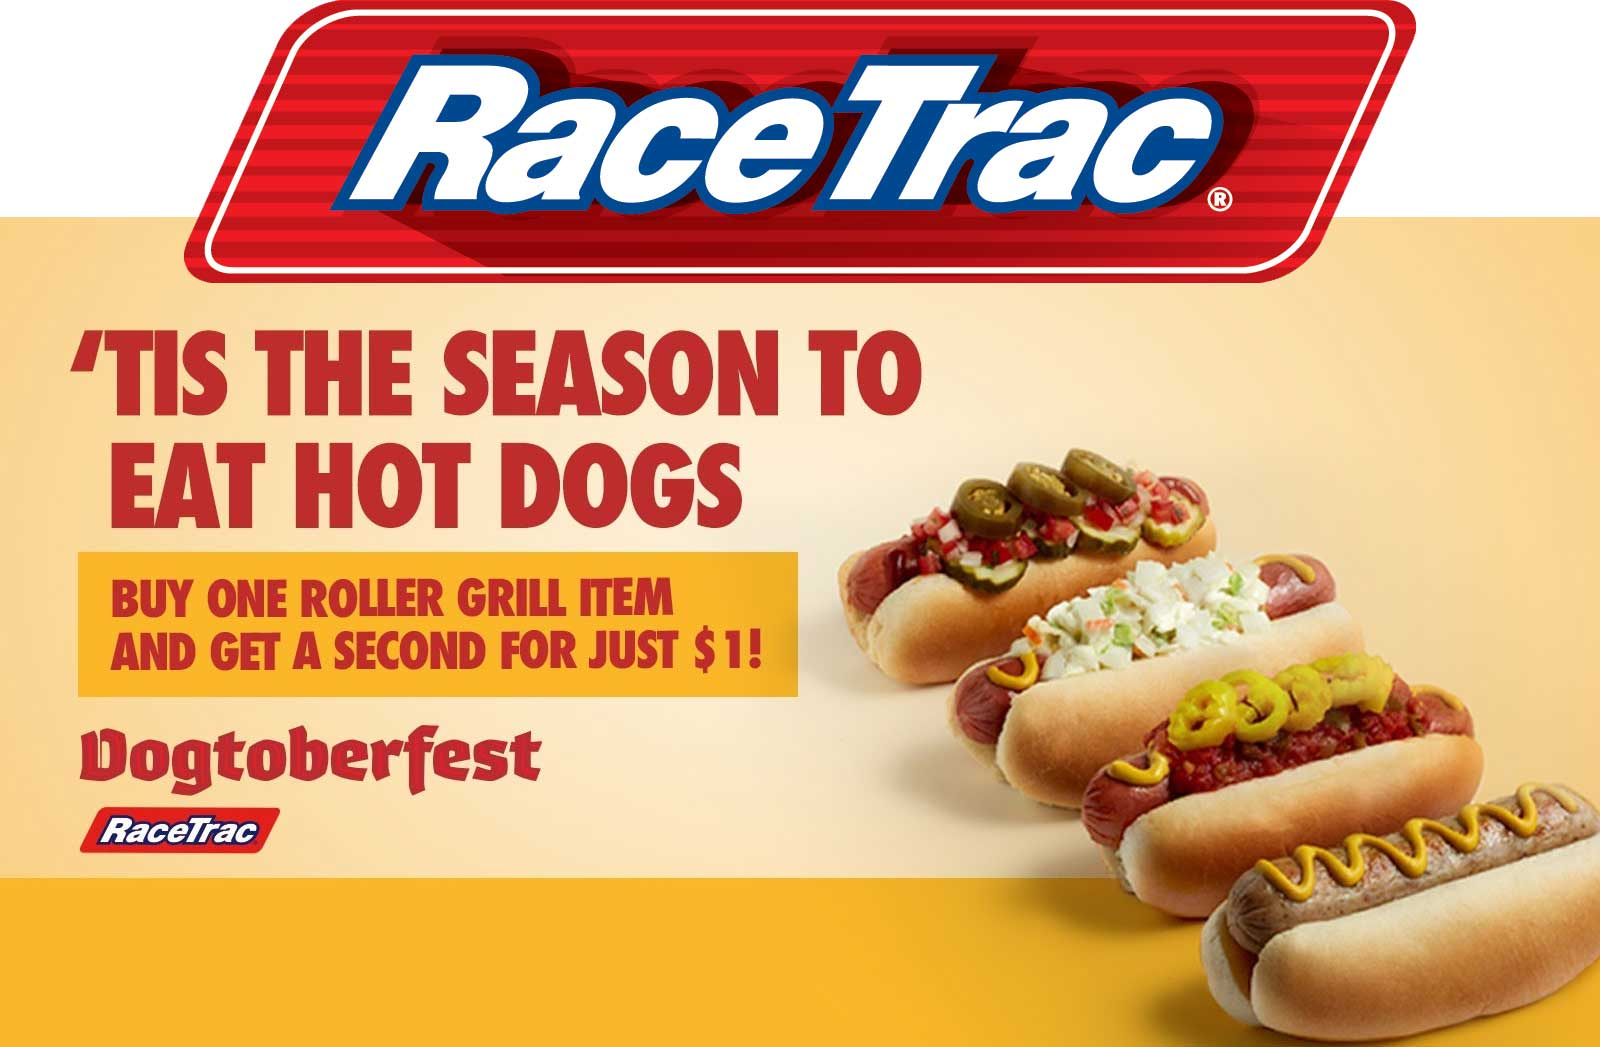 RaceTrac.com Promo Coupon Second hot roller grill item for $1 at RaceTrac gas stations